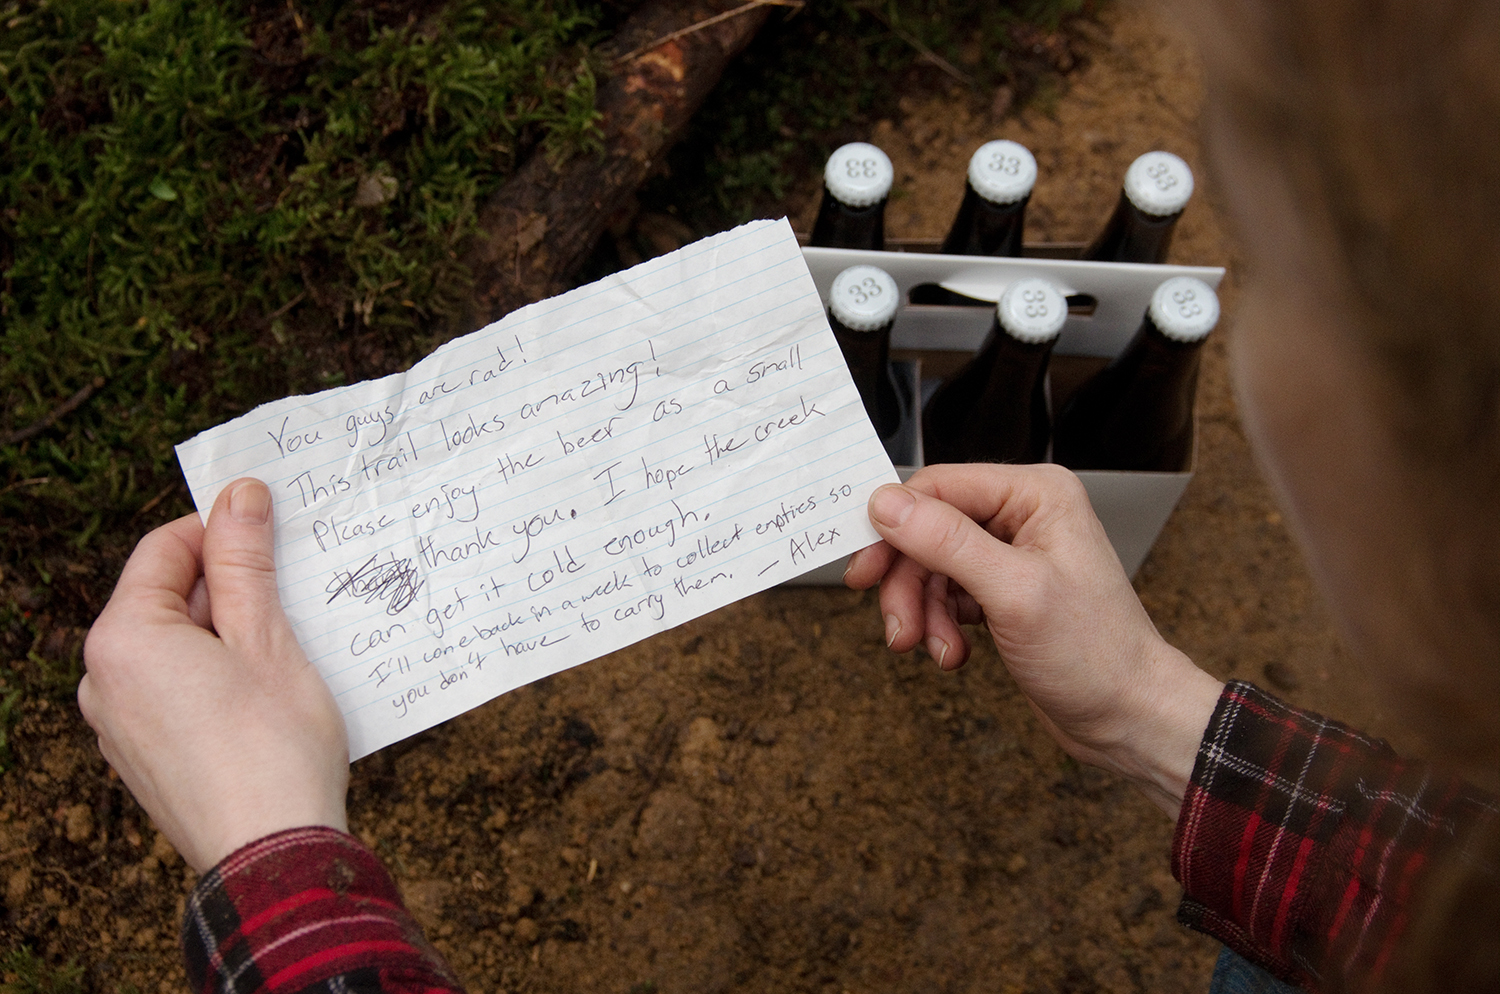 Alex and Maddy were amongst the first to discover the trail while walking their dog. This note became a special keepsake for Martin and Penny.